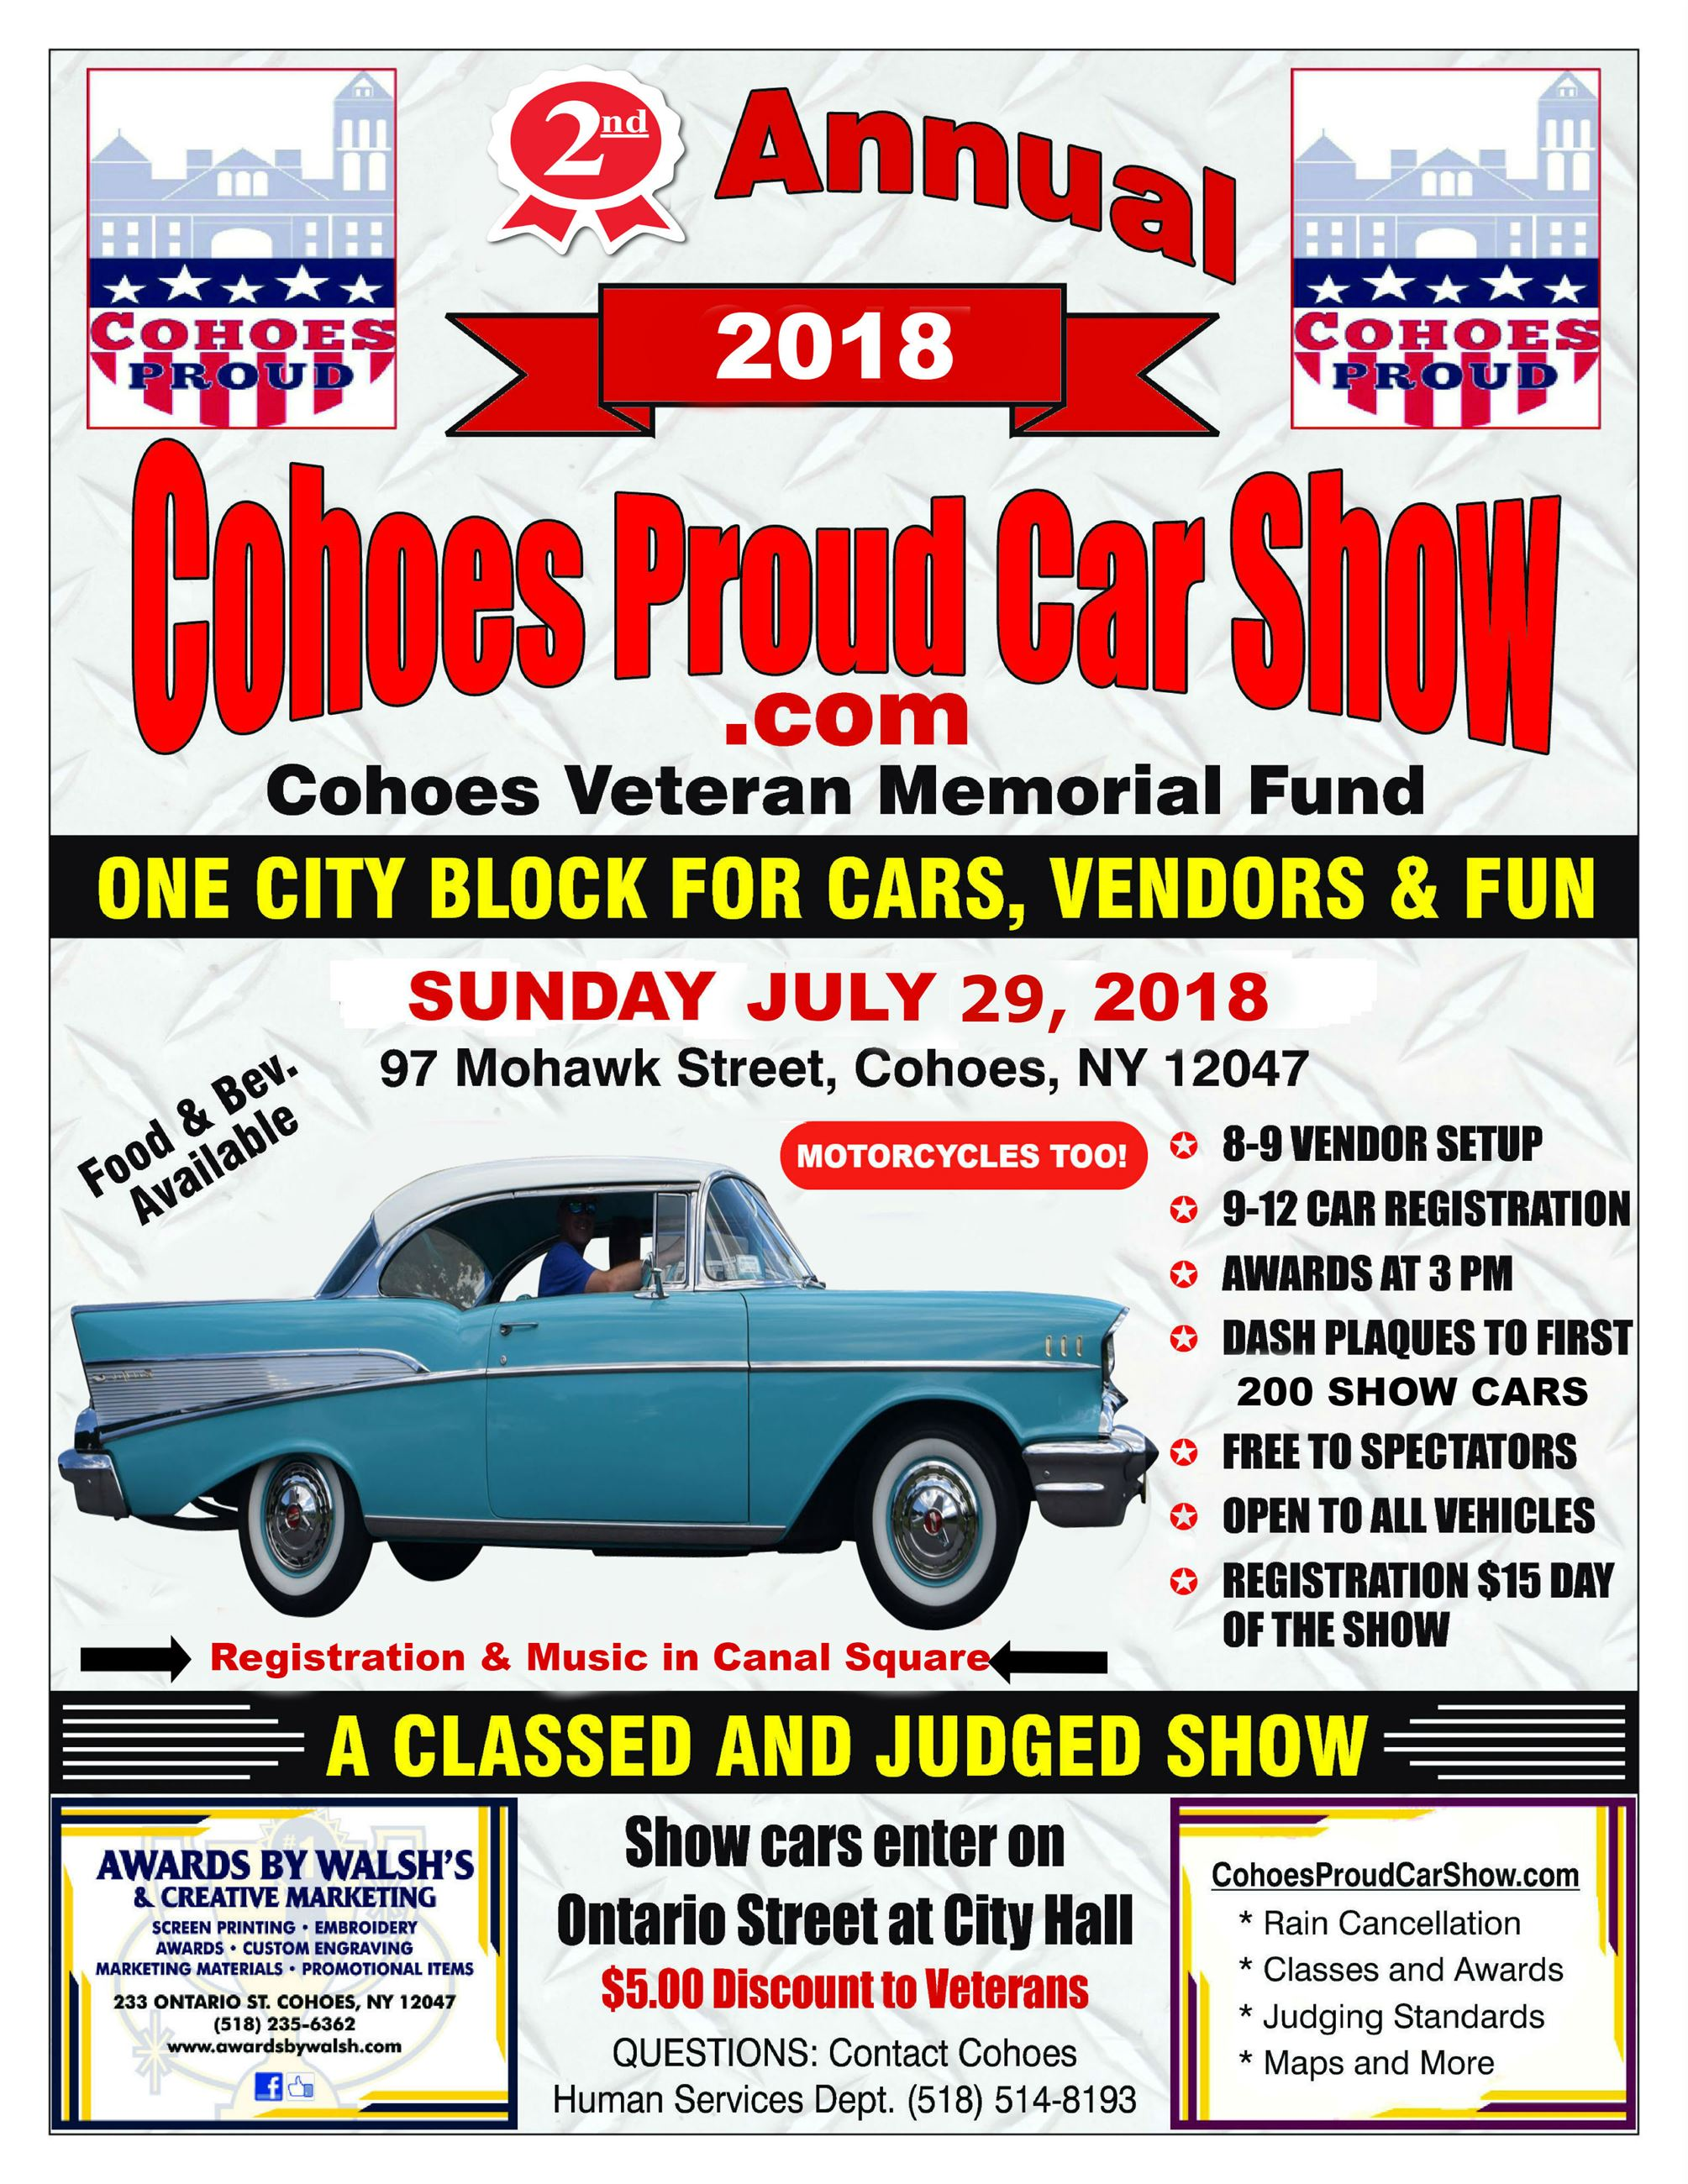 Cohoes Proud Car Show 2018